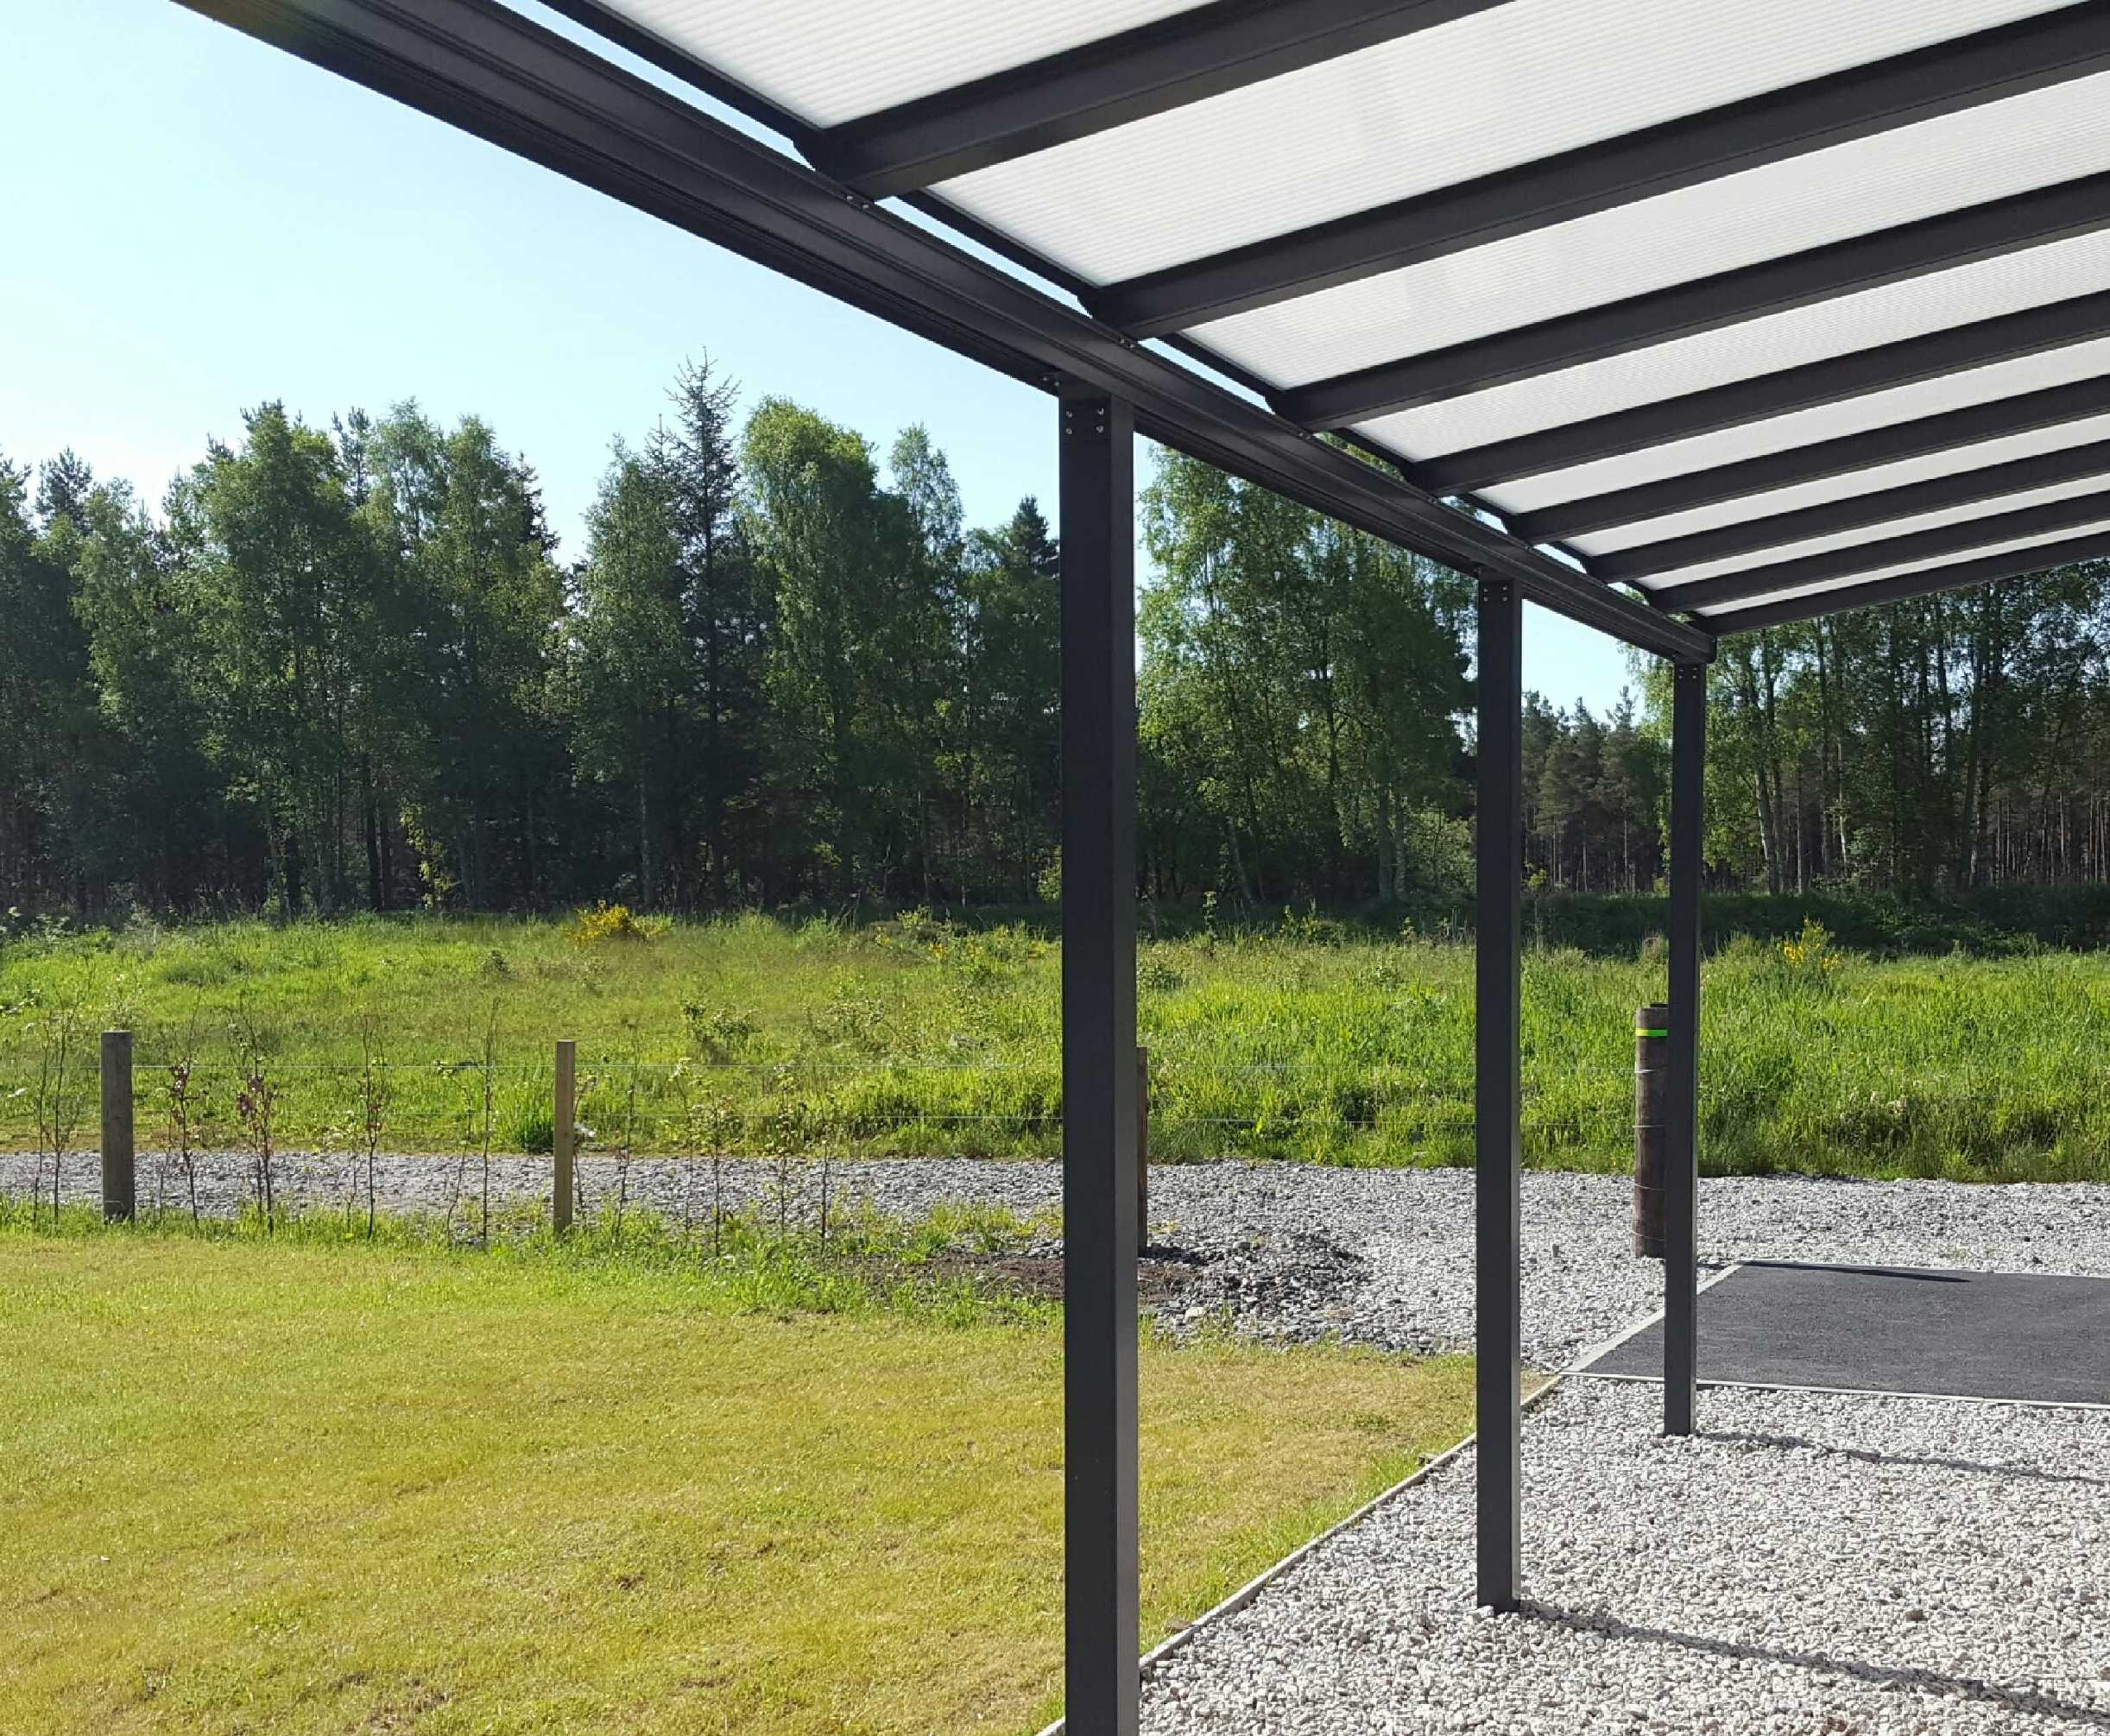 Omega Smart Lean-To Canopy, Anthracite Grey, UNGLAZED for 6mm Glazing - 7.4m (W) x 4.0m (P), (4) Supporting Posts